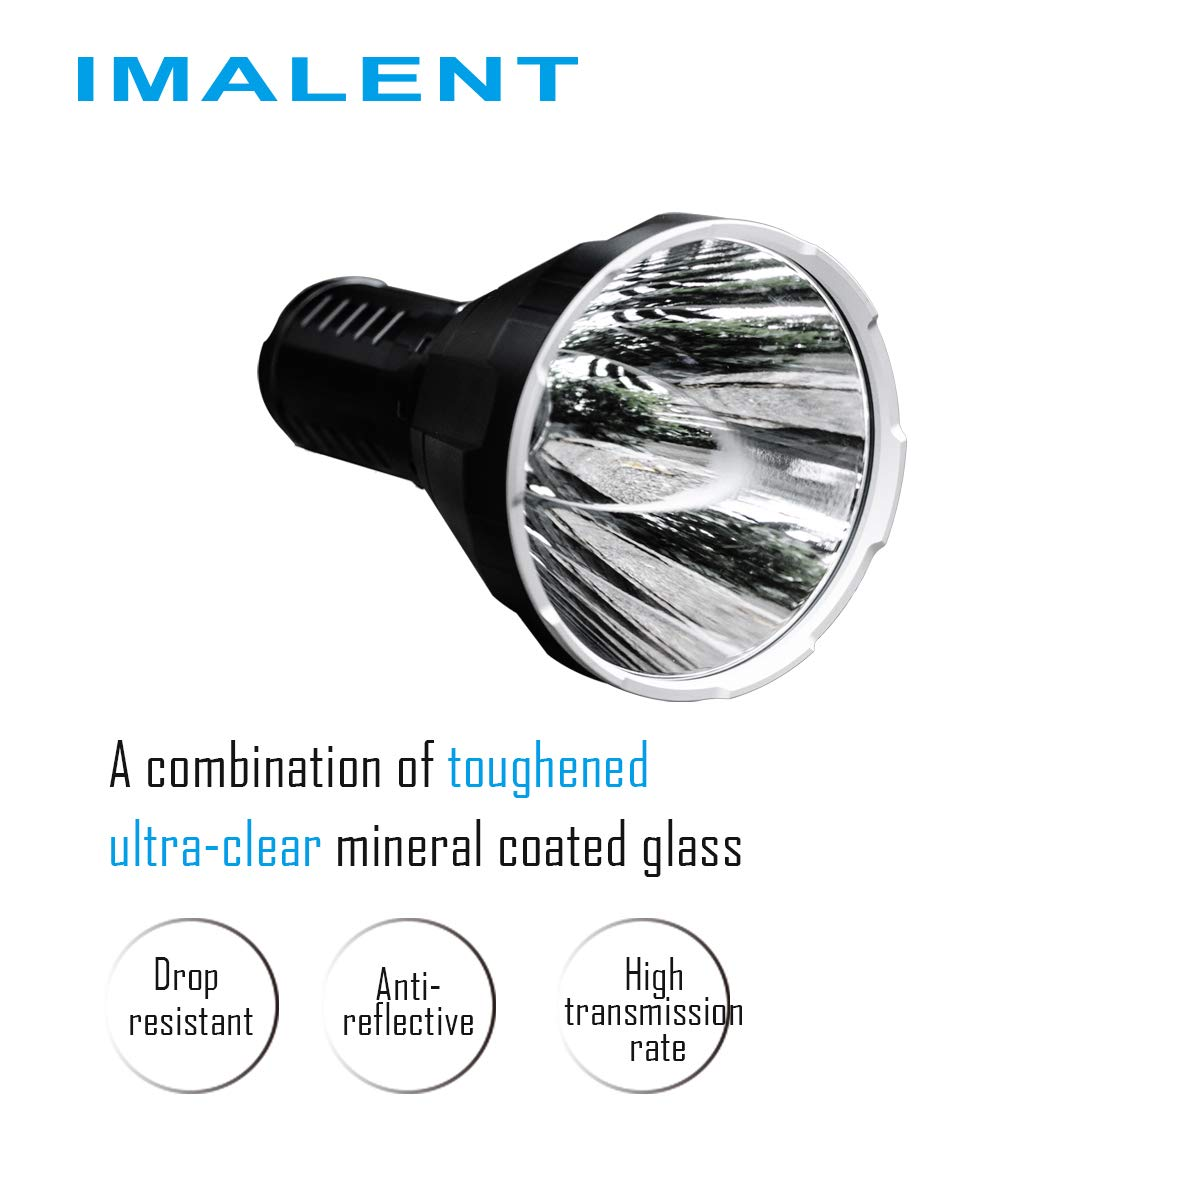 IMALENT R70C Flashlight Long Thrower 1270 Meters CREE XHP70 2nd Generation LED Floodlight USB Magnetically Rechargeable Handheld Torch For Camping and Adventuring